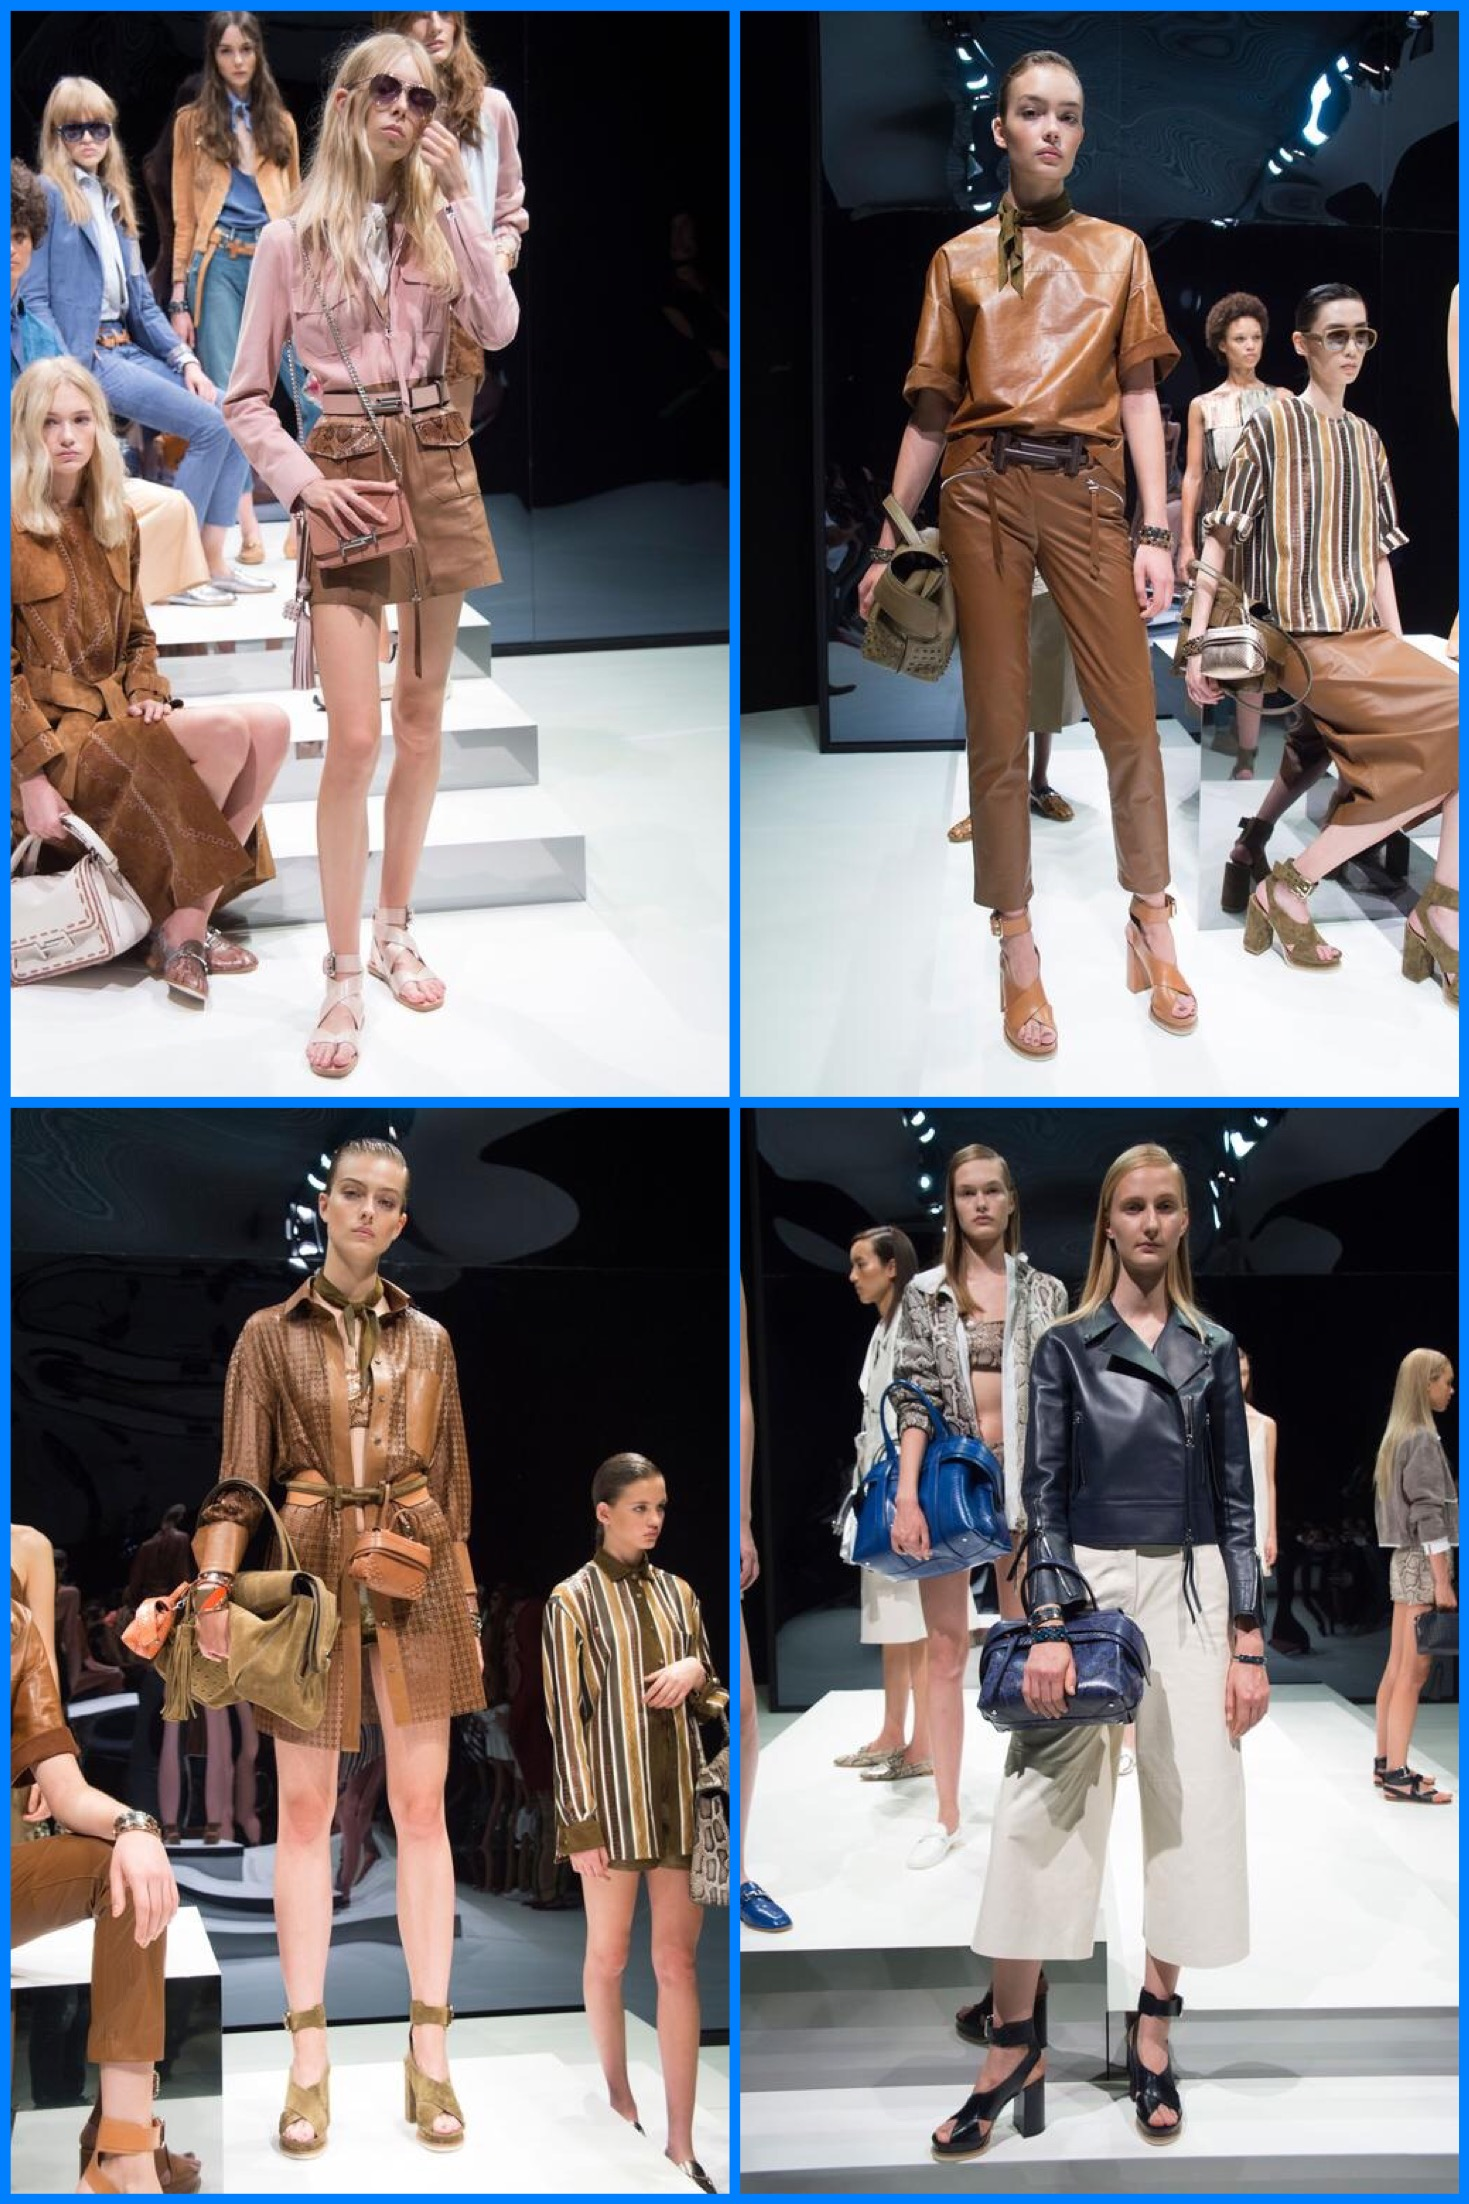 milano-fashion-week-pret-a-porter-spring-summer-2017-style-tods